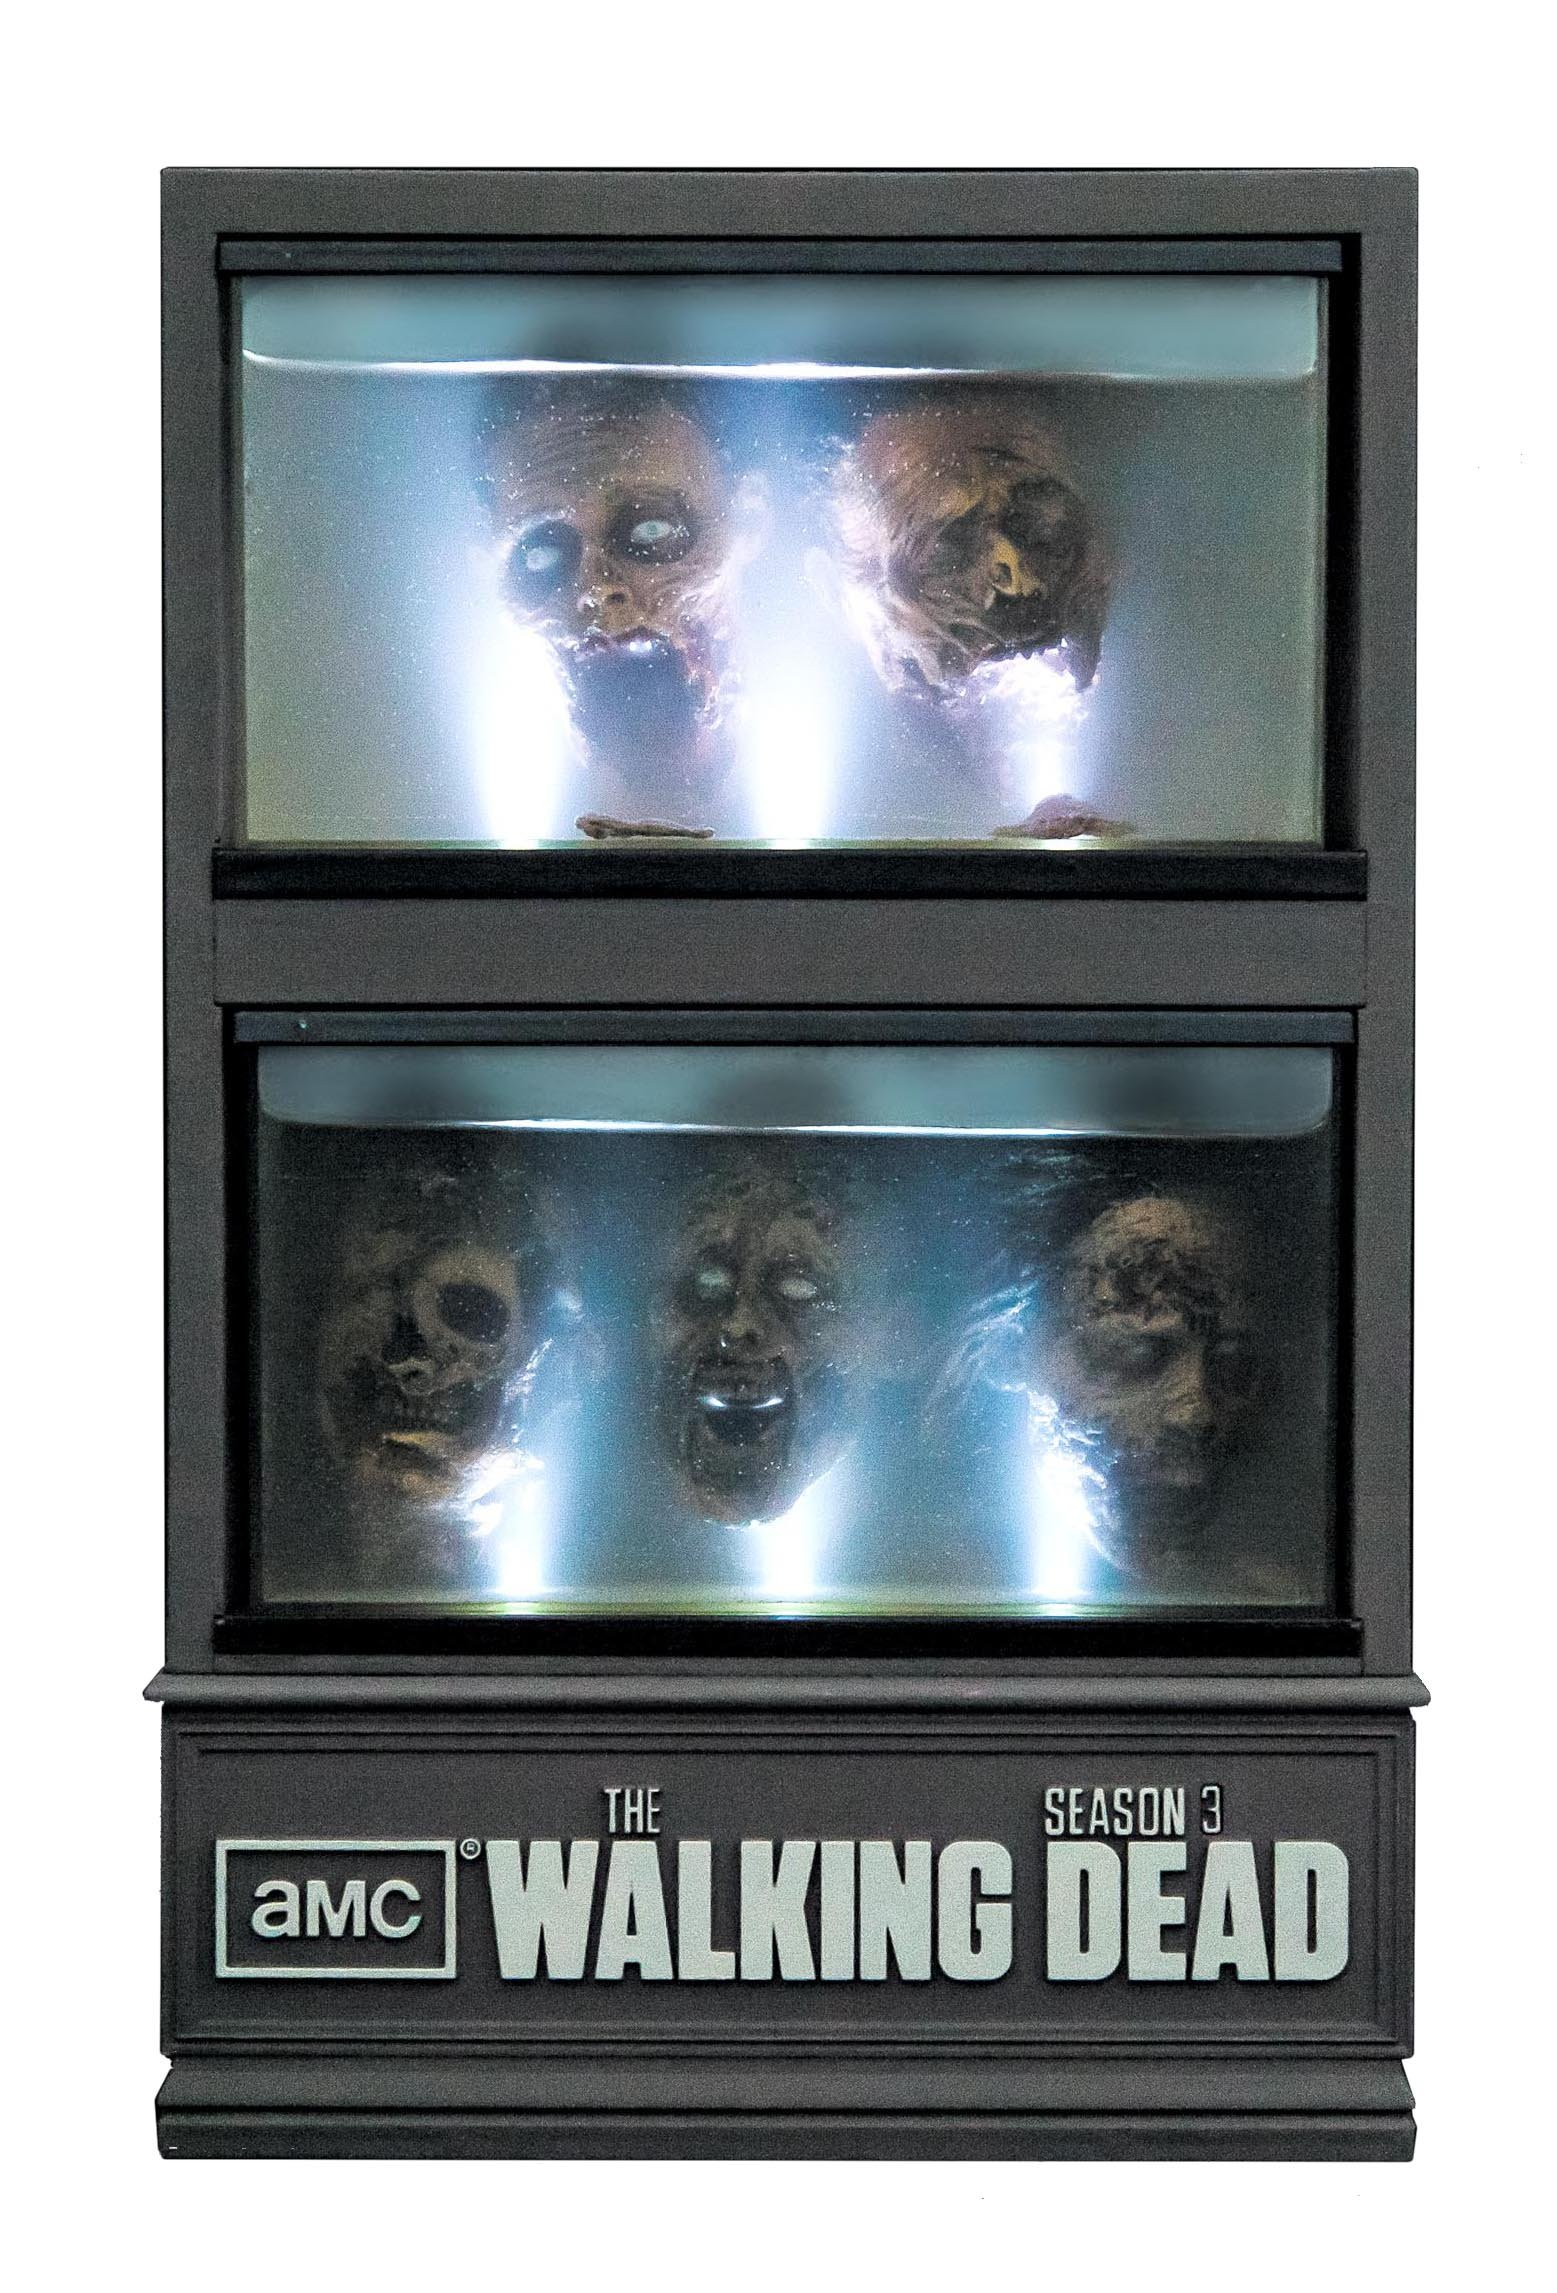 The Walking Dead Season 3 Limited Edition [Blu-ray] by Anchor Bay Entertainment